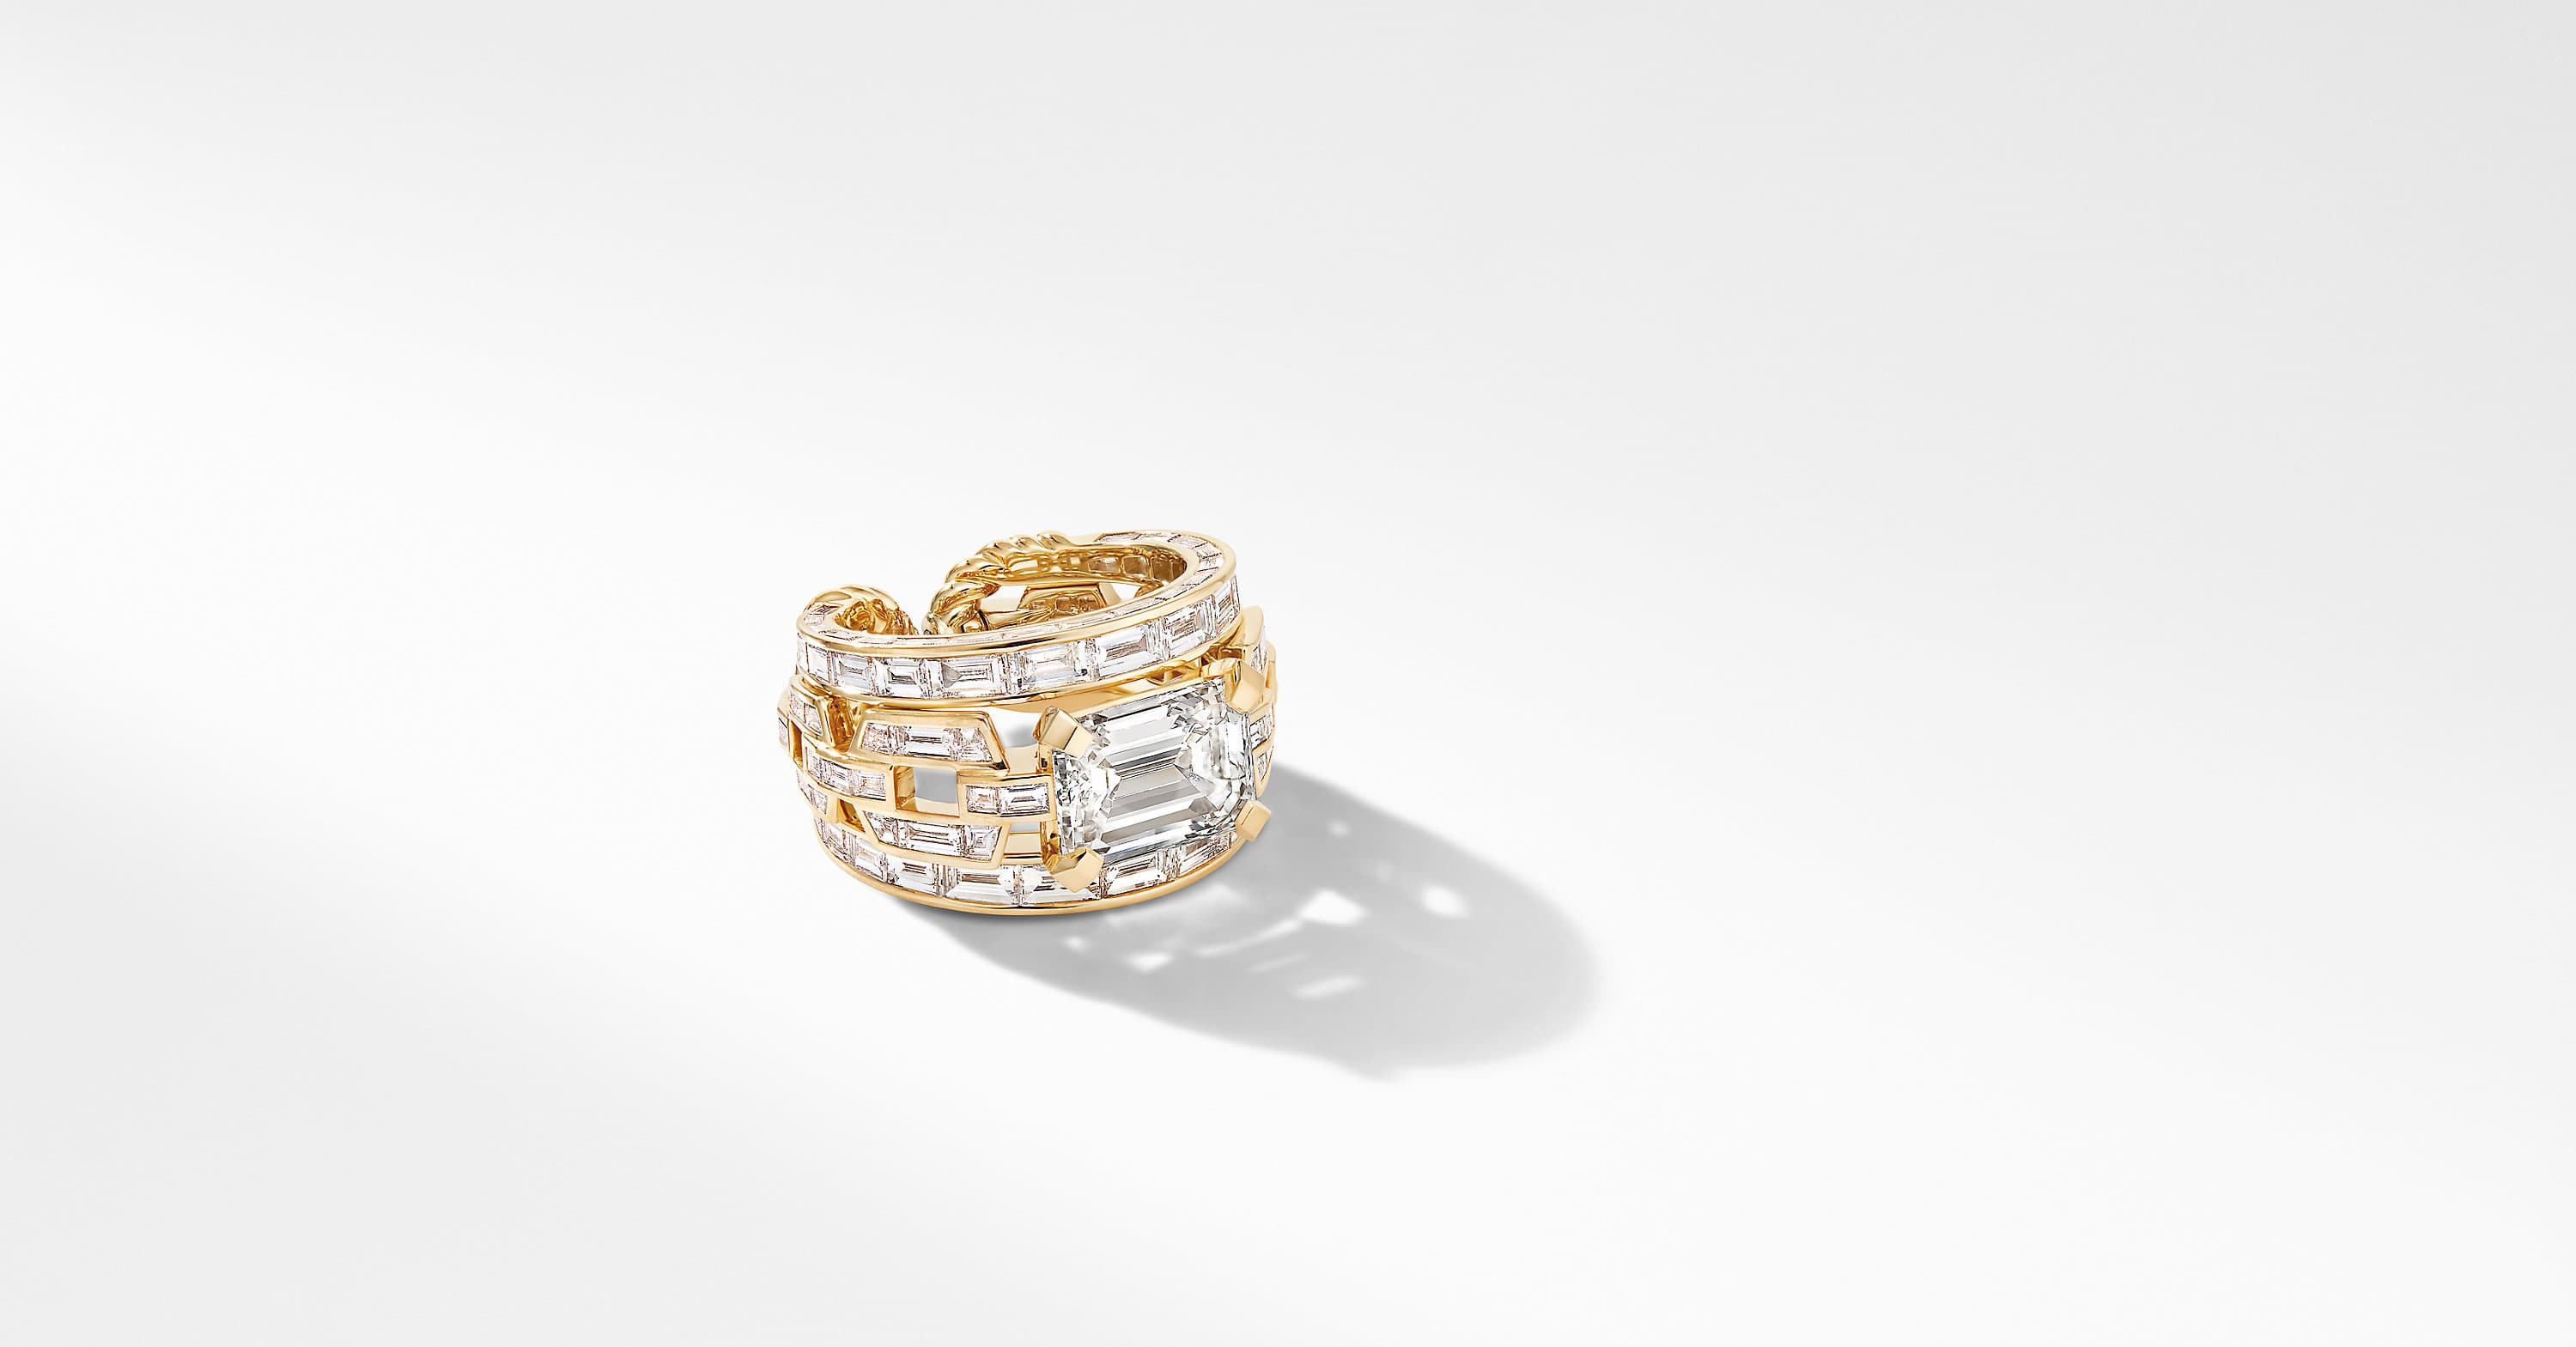 Stax Emerald Cut Ring in Yellow Gold with Diamonds